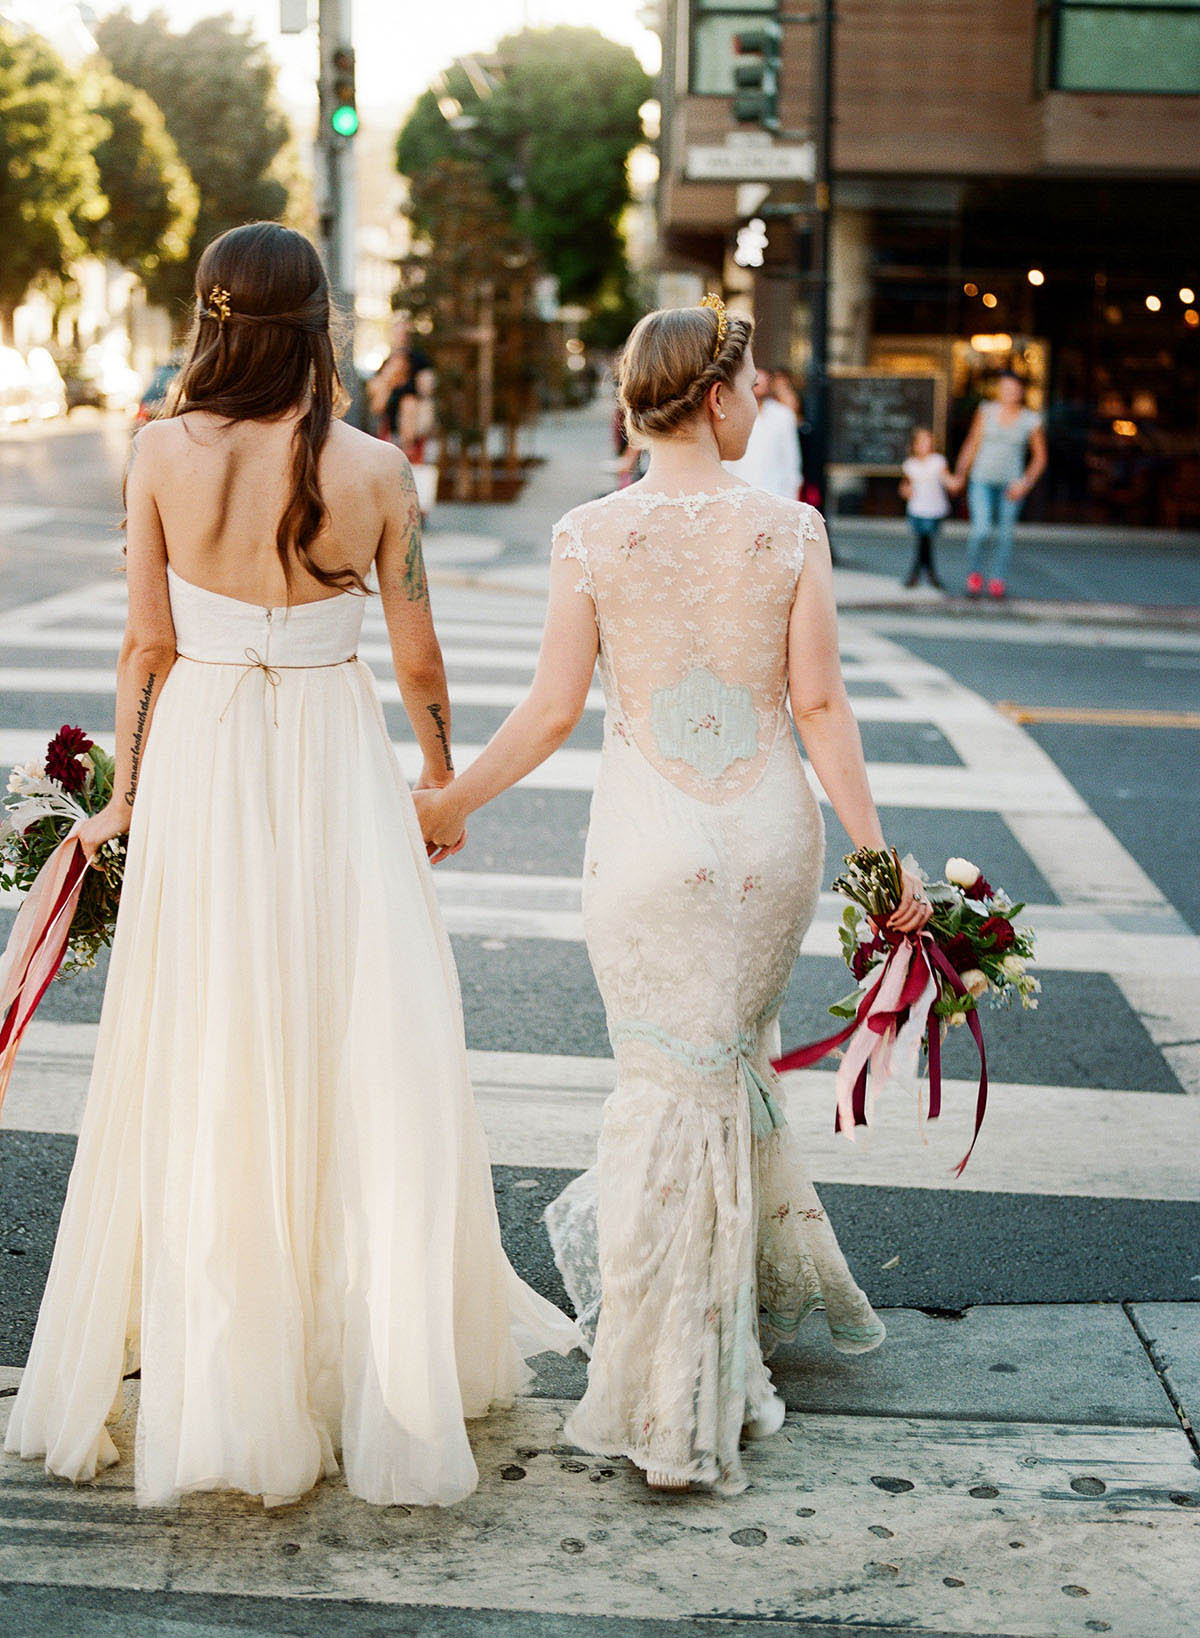 22-brides-walking-street-san-francisco.jpg